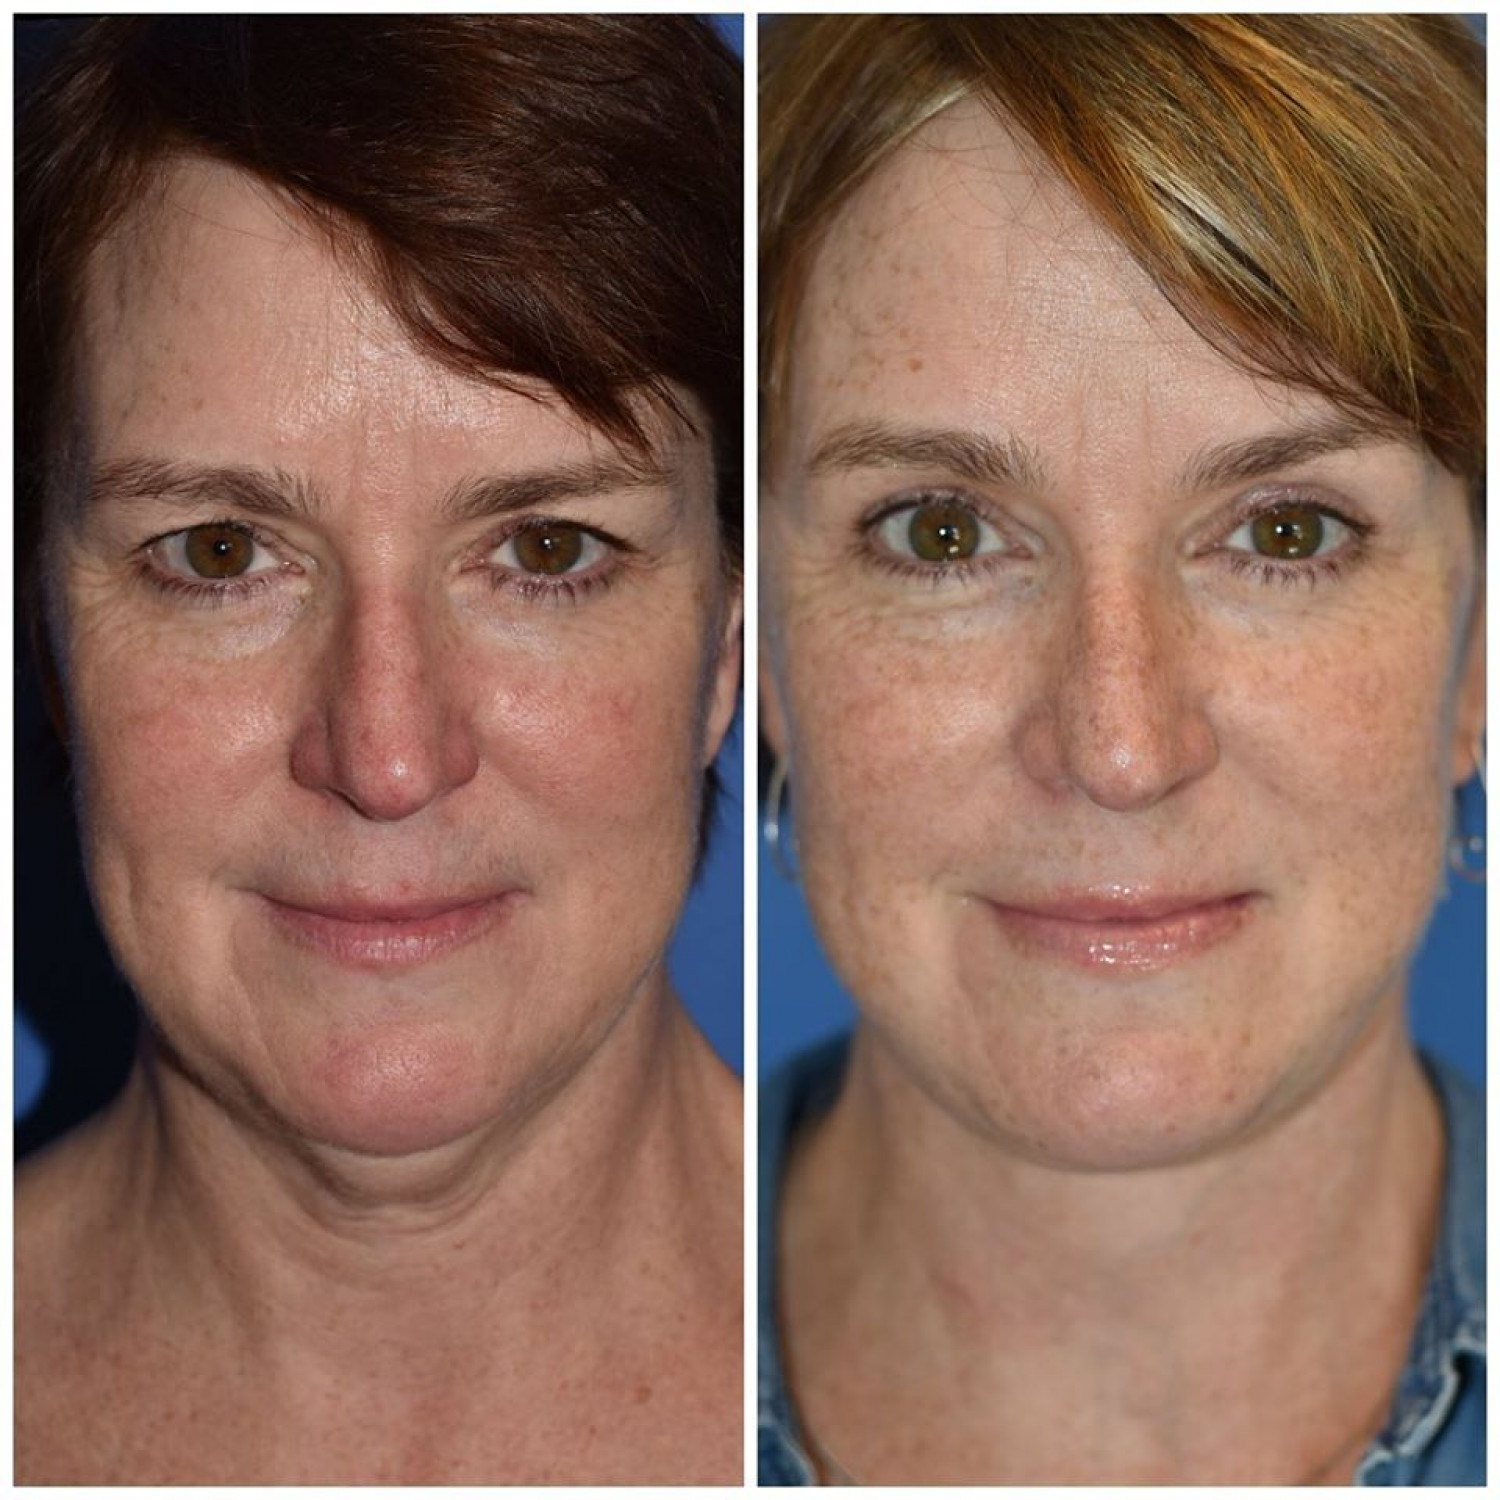 Facelift Surgery Seattle WA Infographic